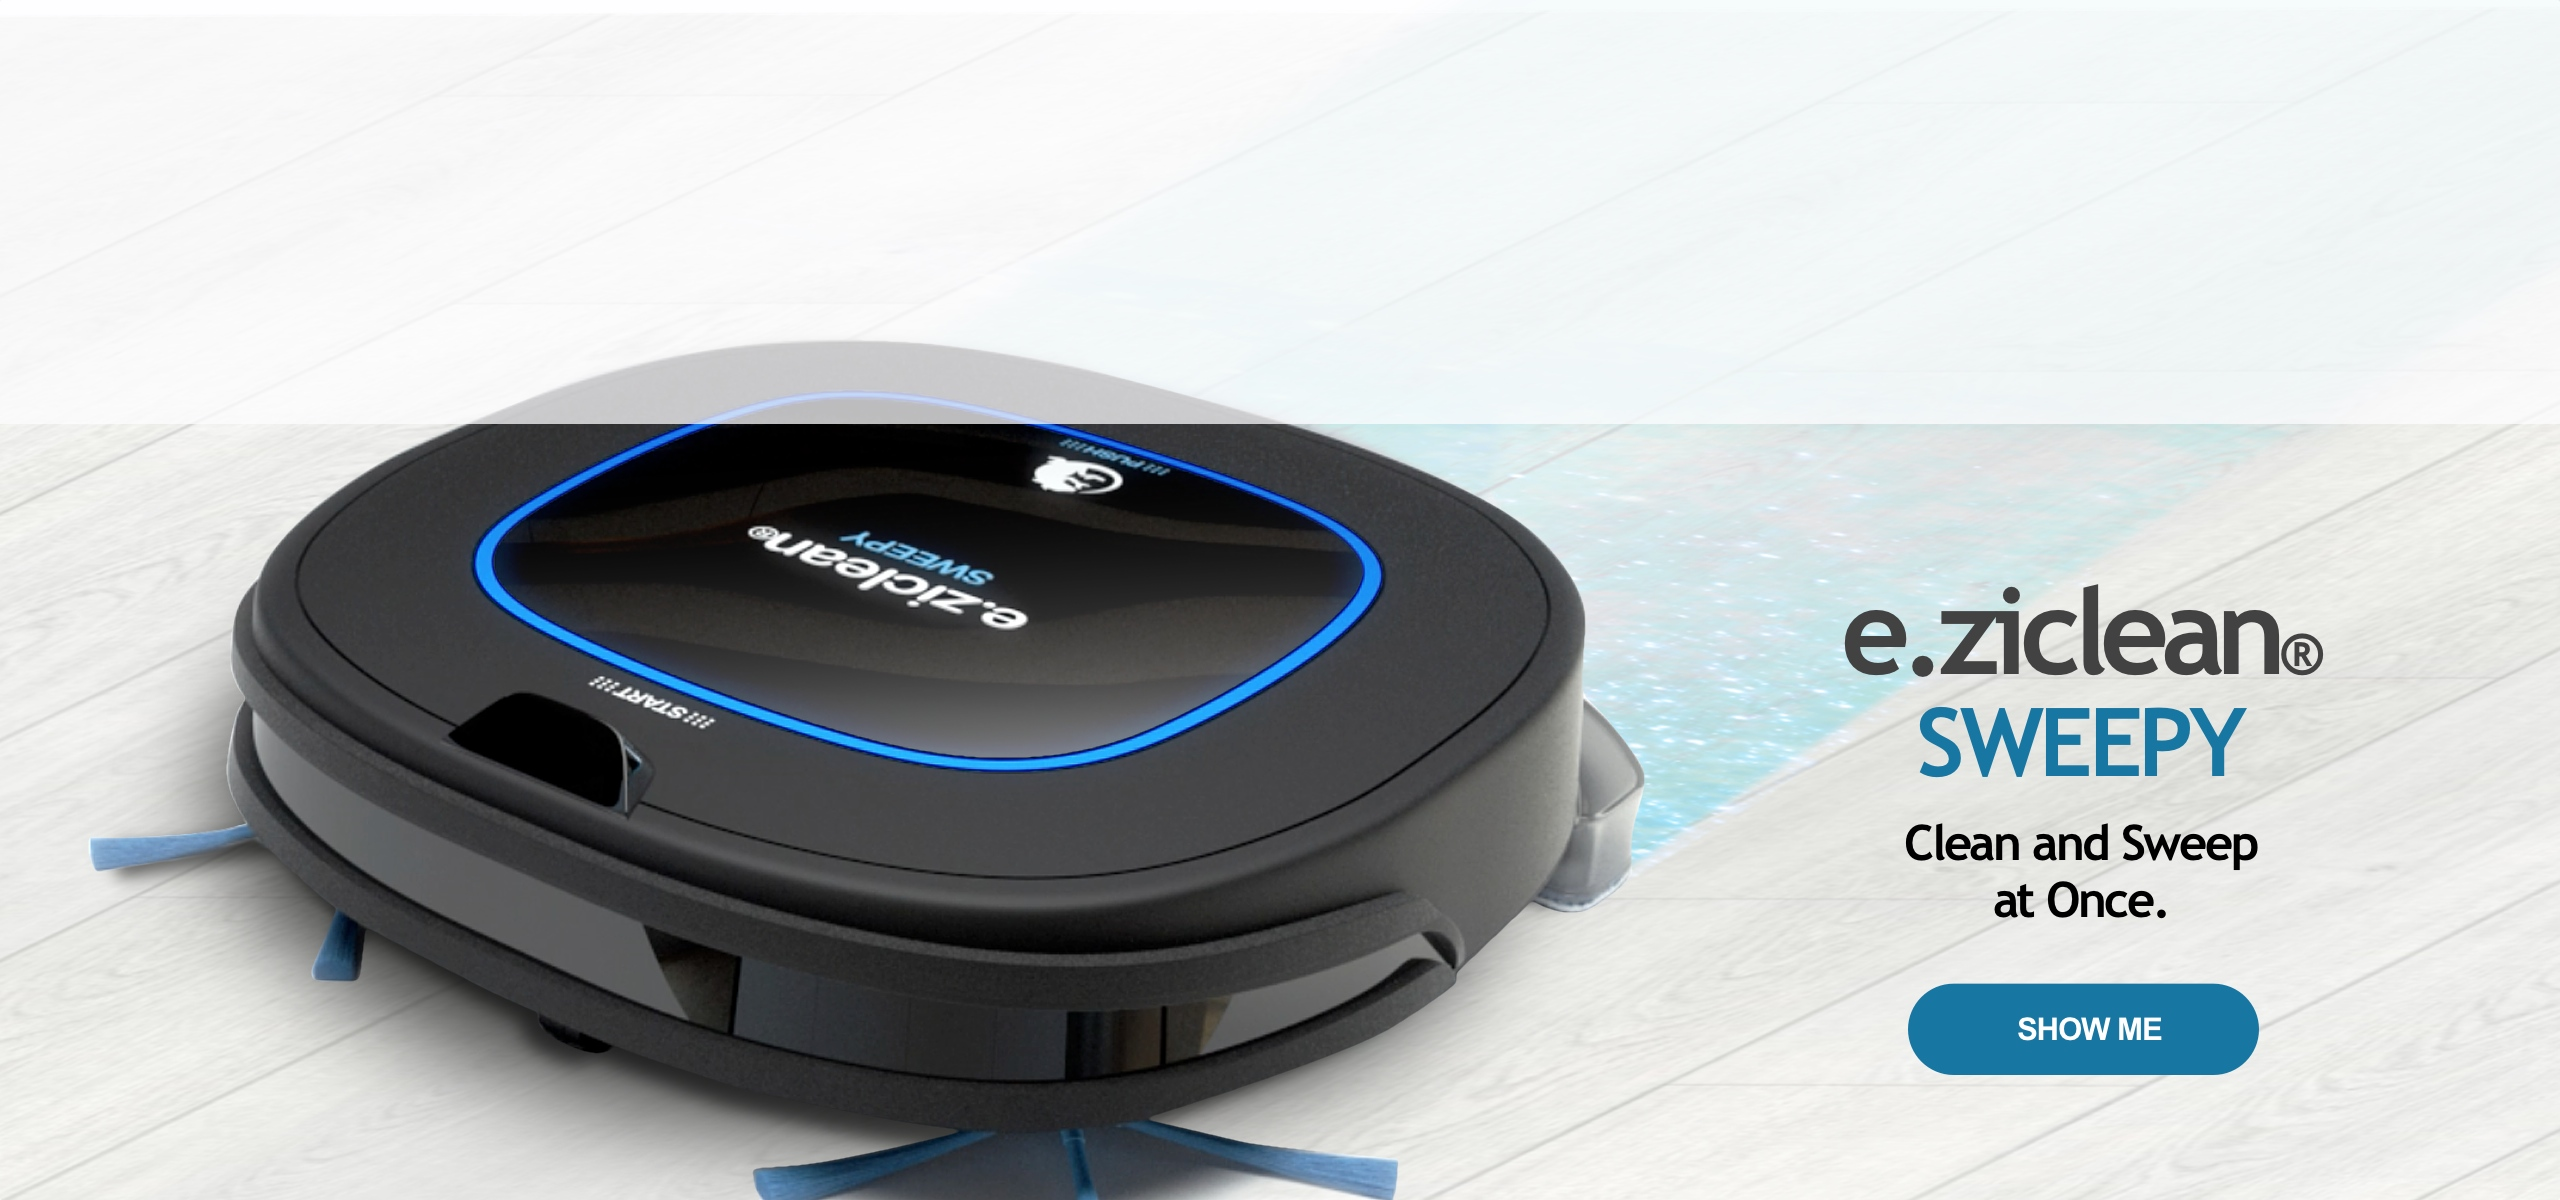 e.ziclean SWEEPY Hybrid Cleaning Robot